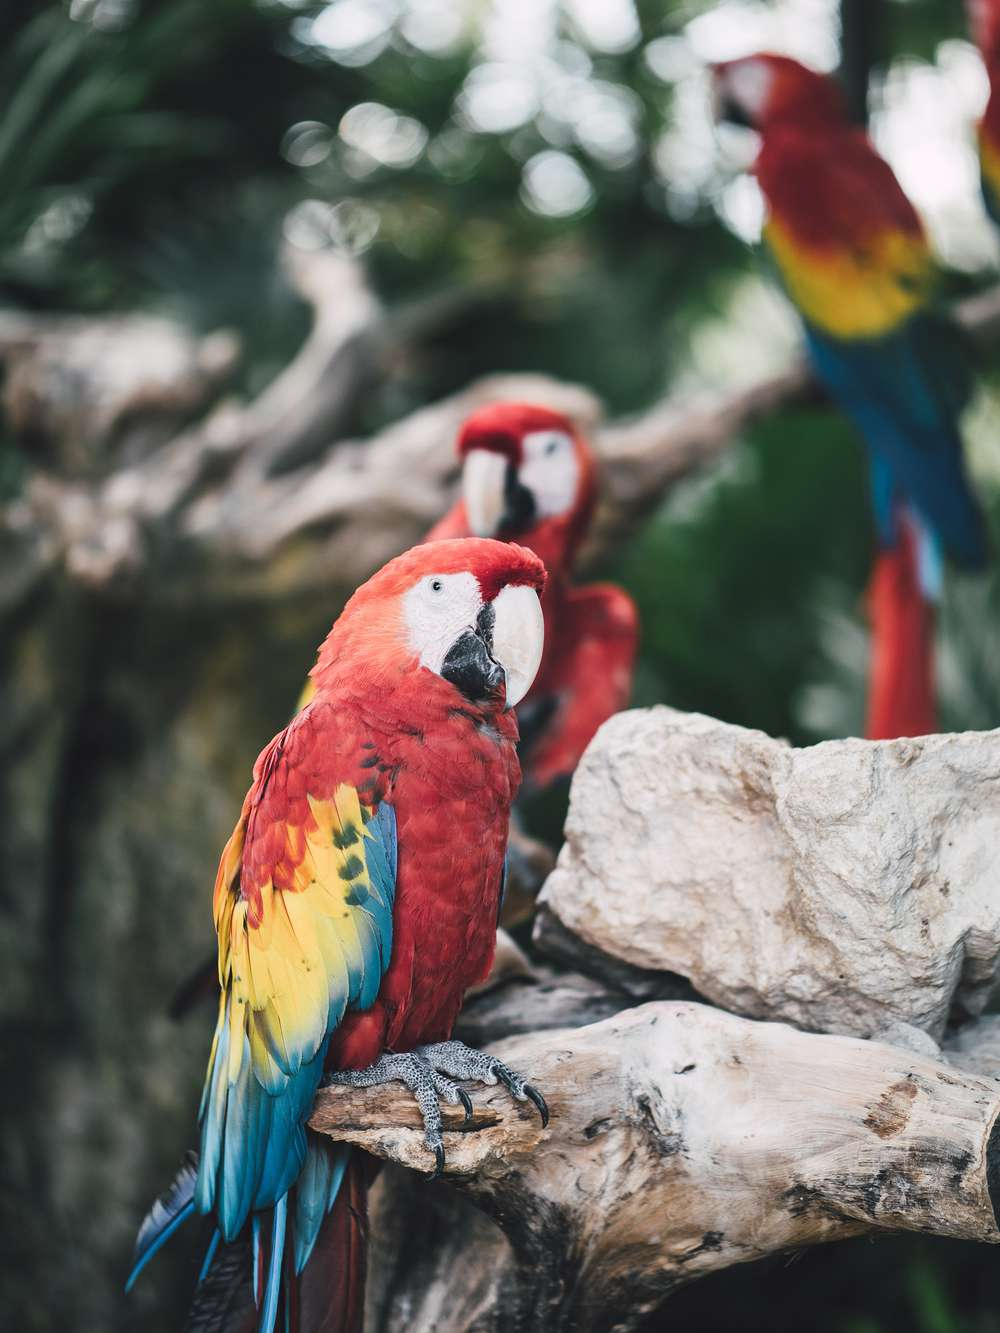 Red macaws in Mexico